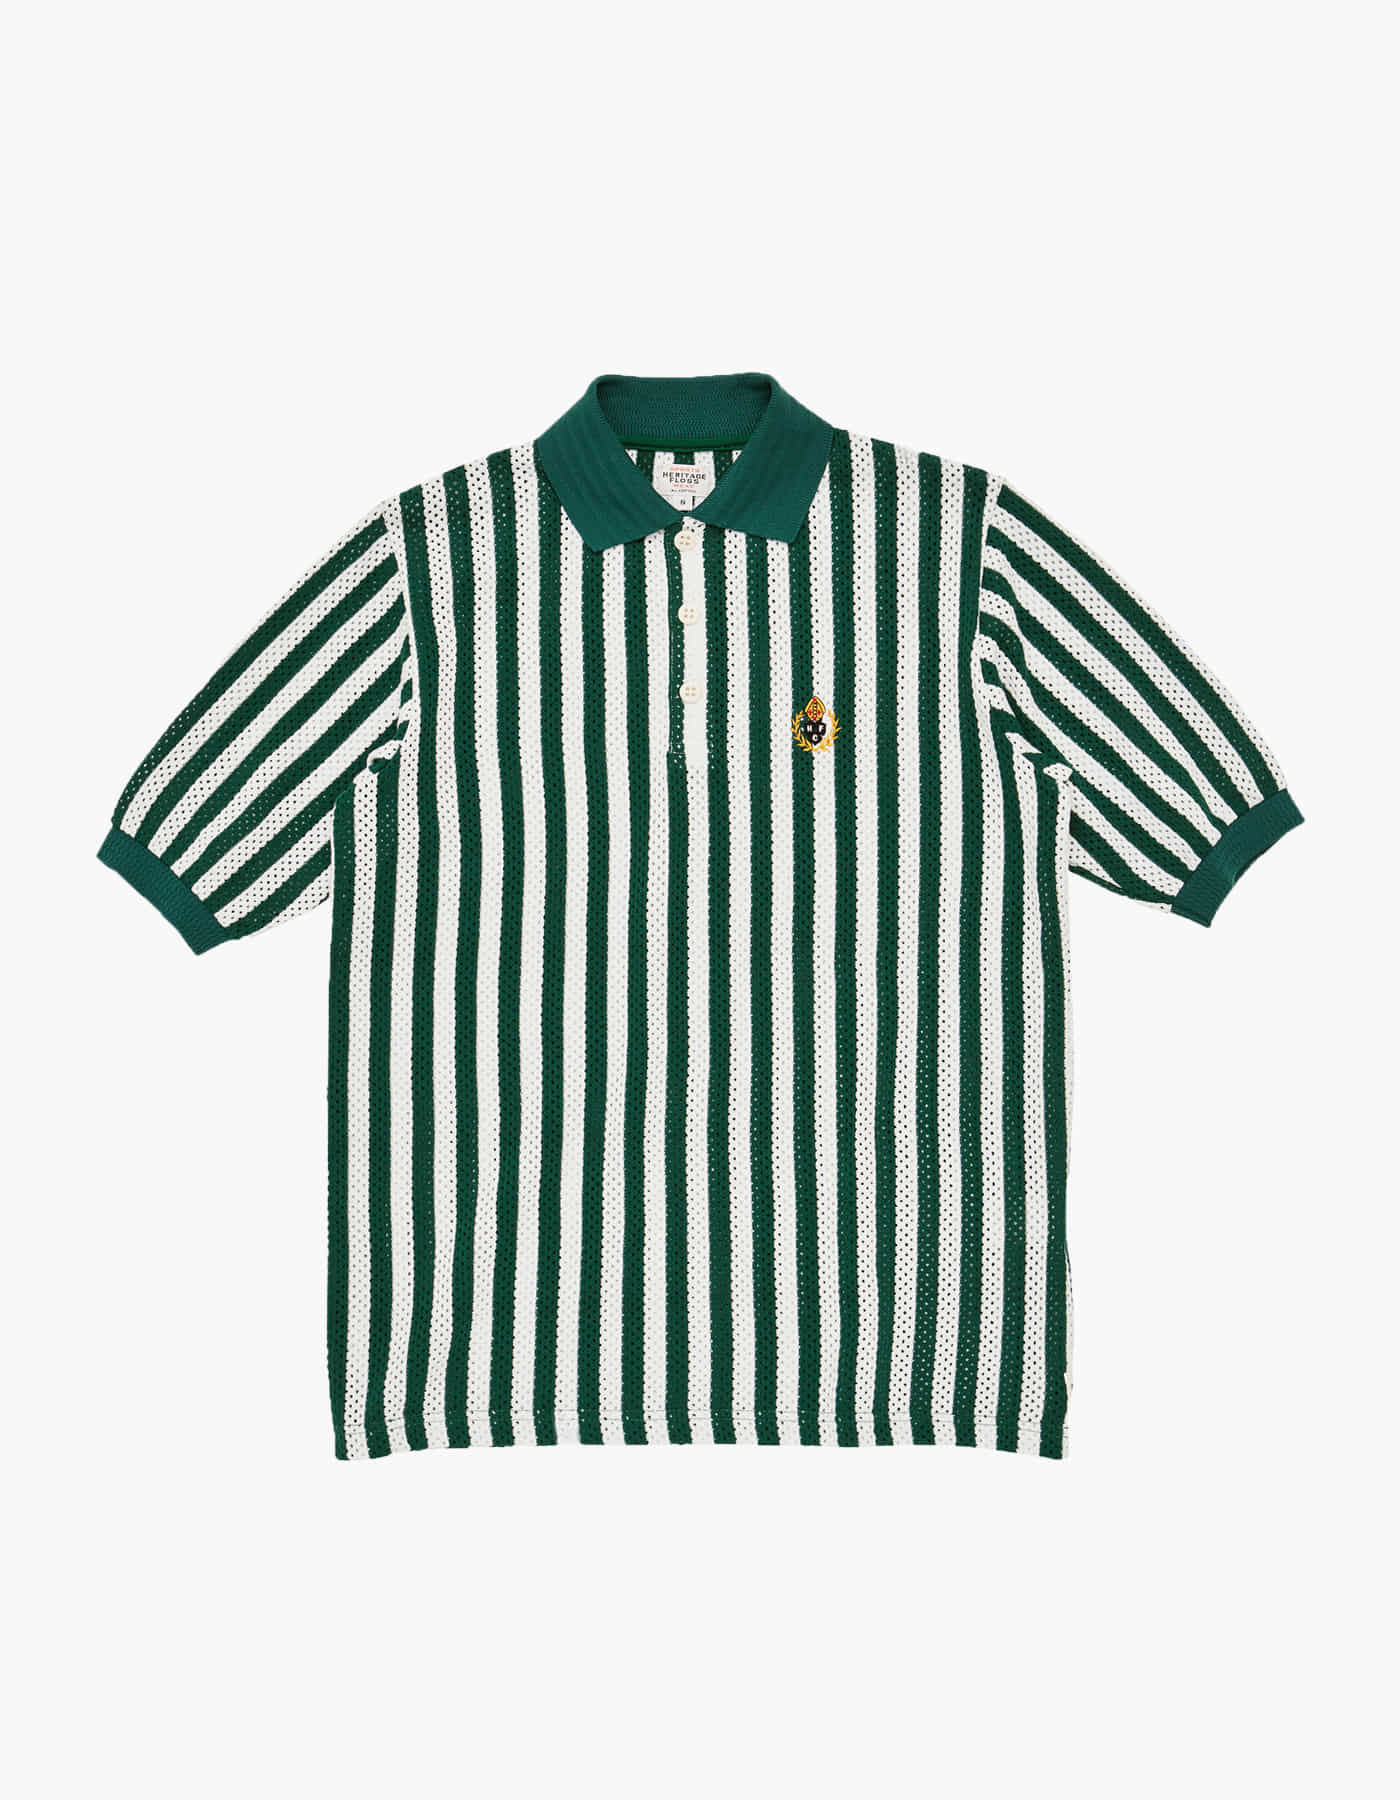 ENGLISH STRIPED MESH PIQUE SHIRT / WHITE-GREEN